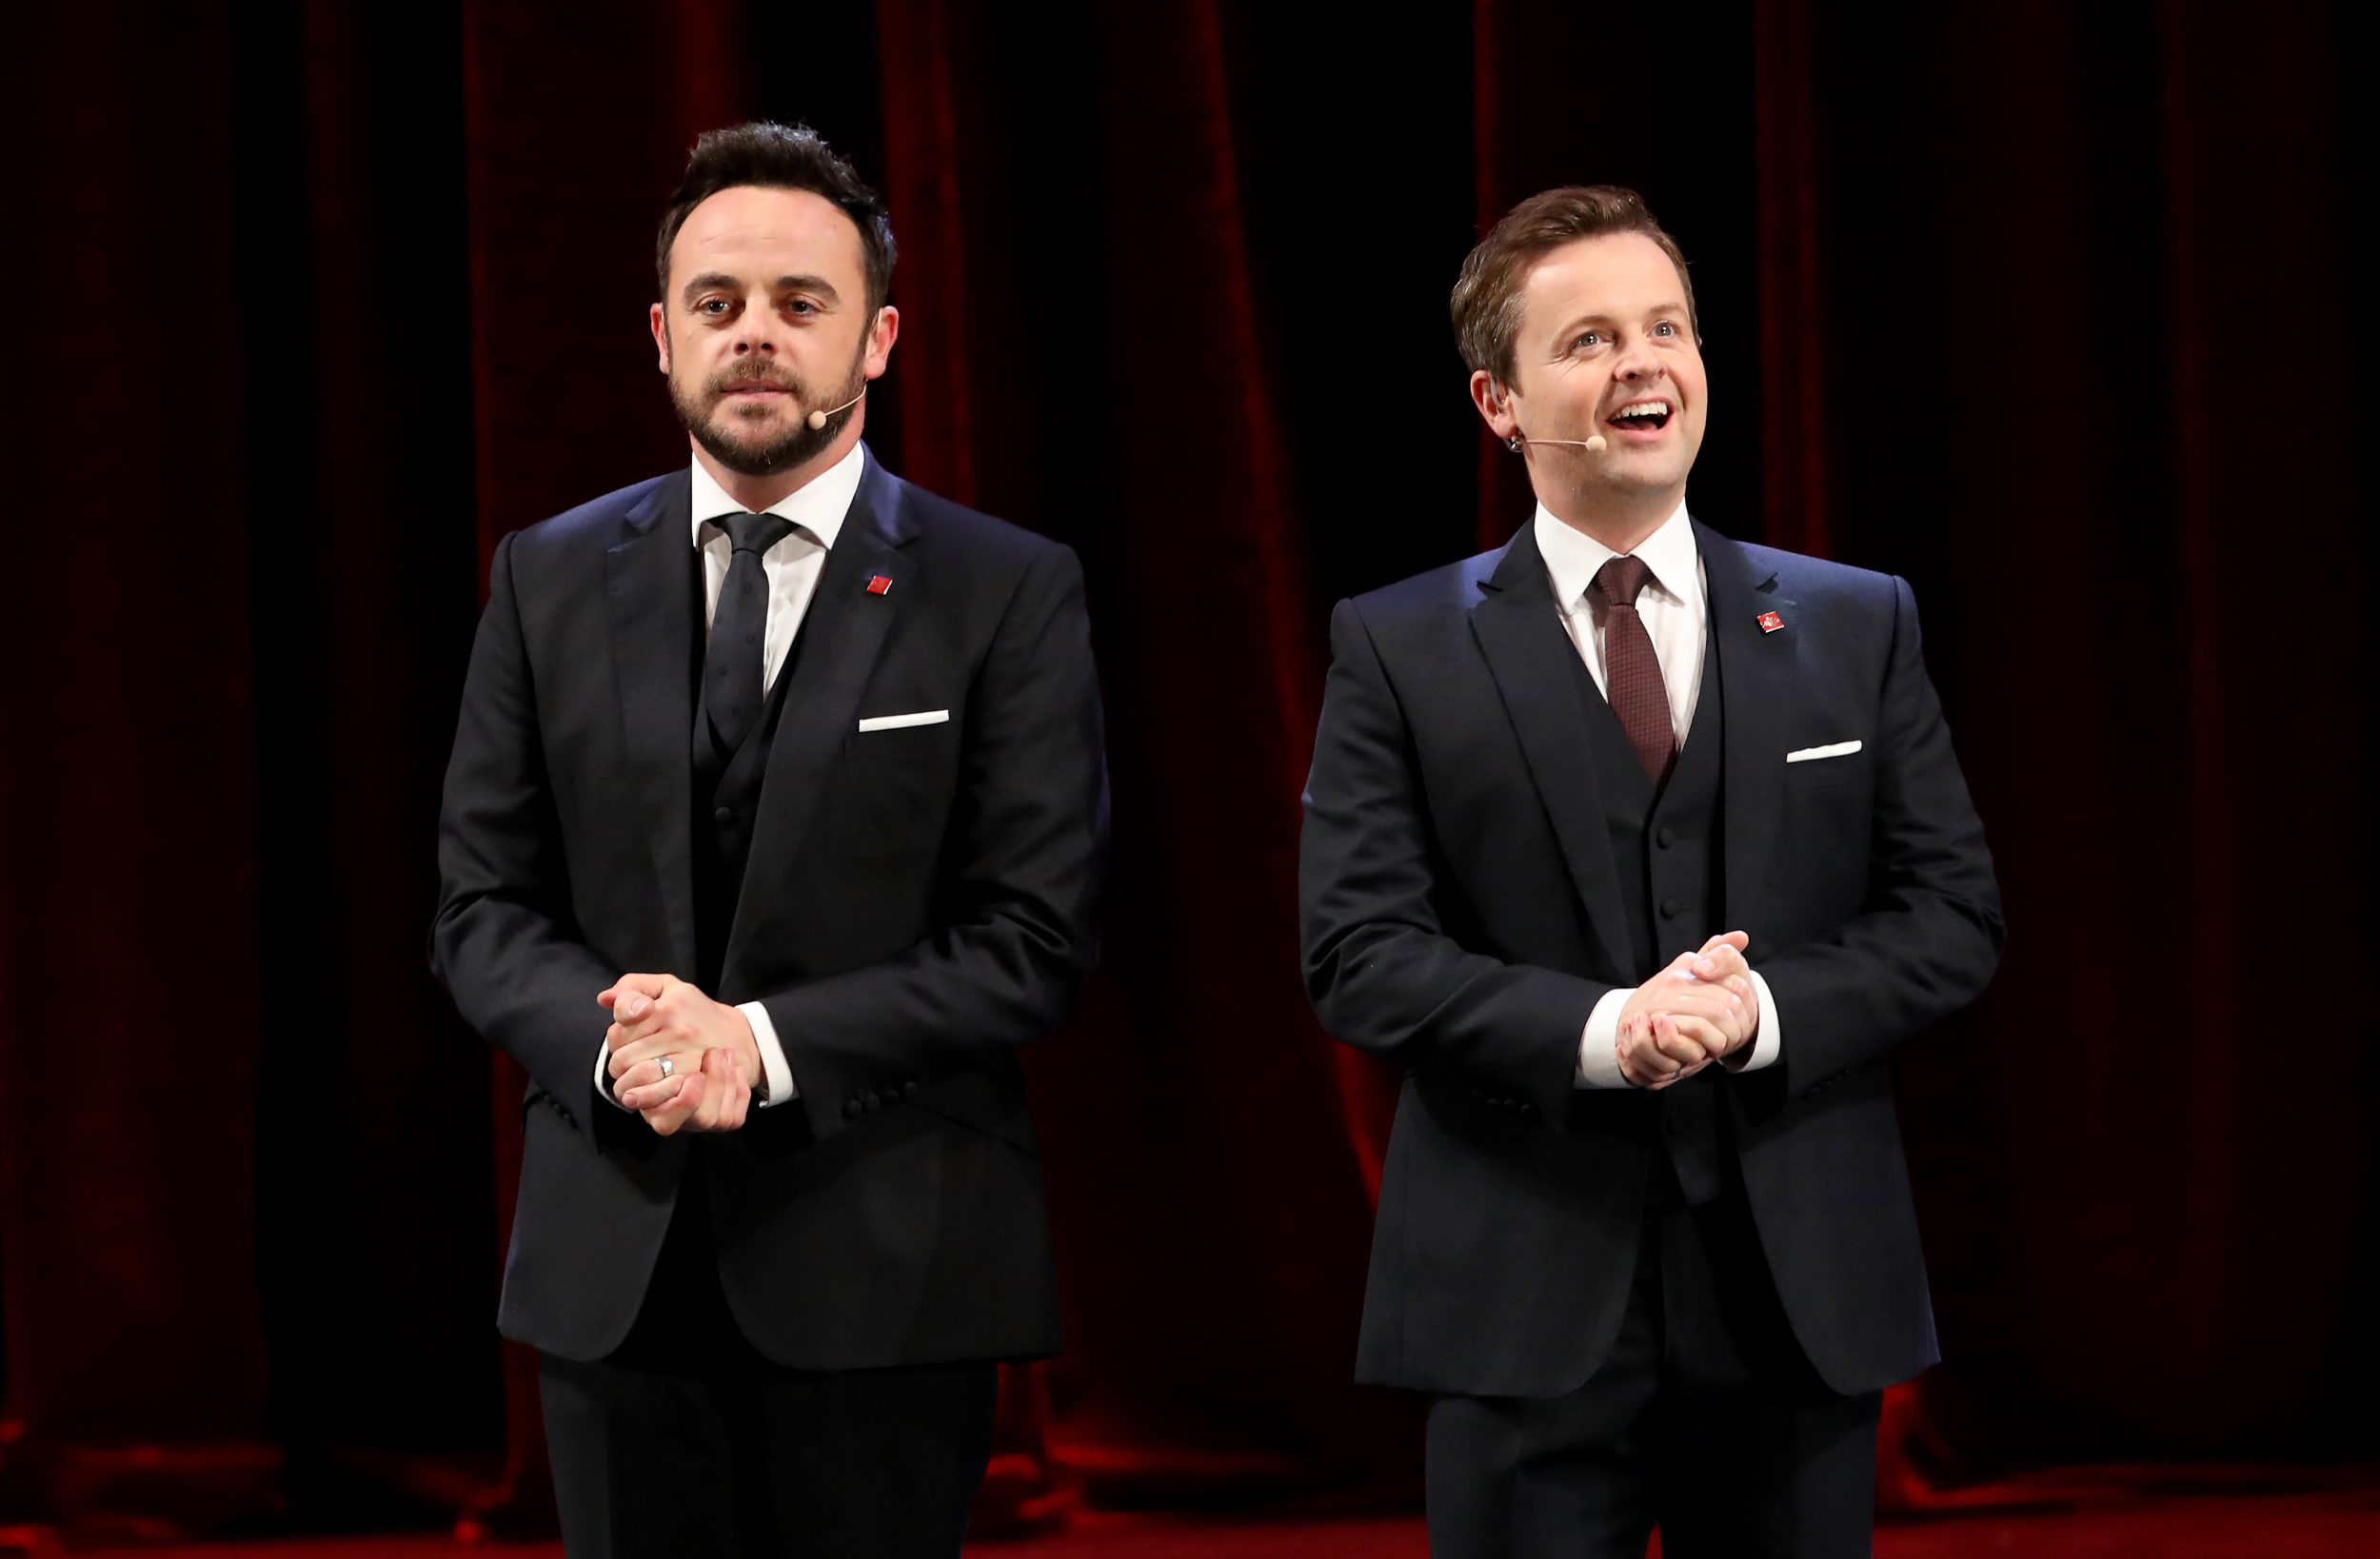 Declan Donnelly sought therapy to deal with Ant McPartlin's drink-driving charge